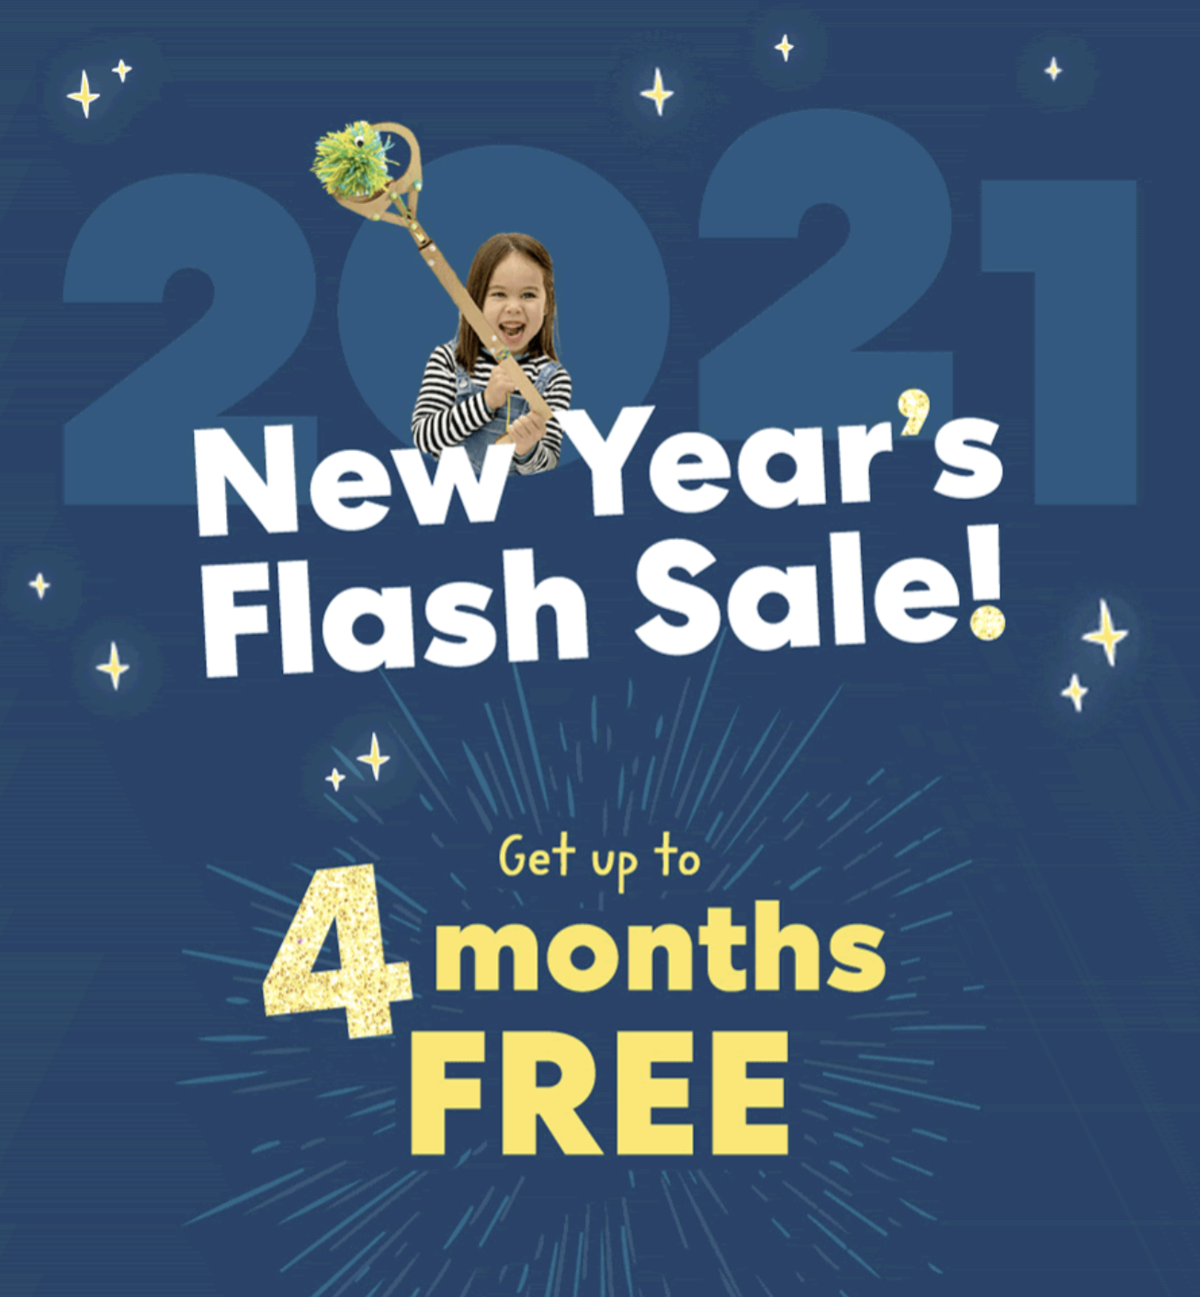 KiwiCo New Year's Sale – Save 50% Off and Up to 4-Months FREE!